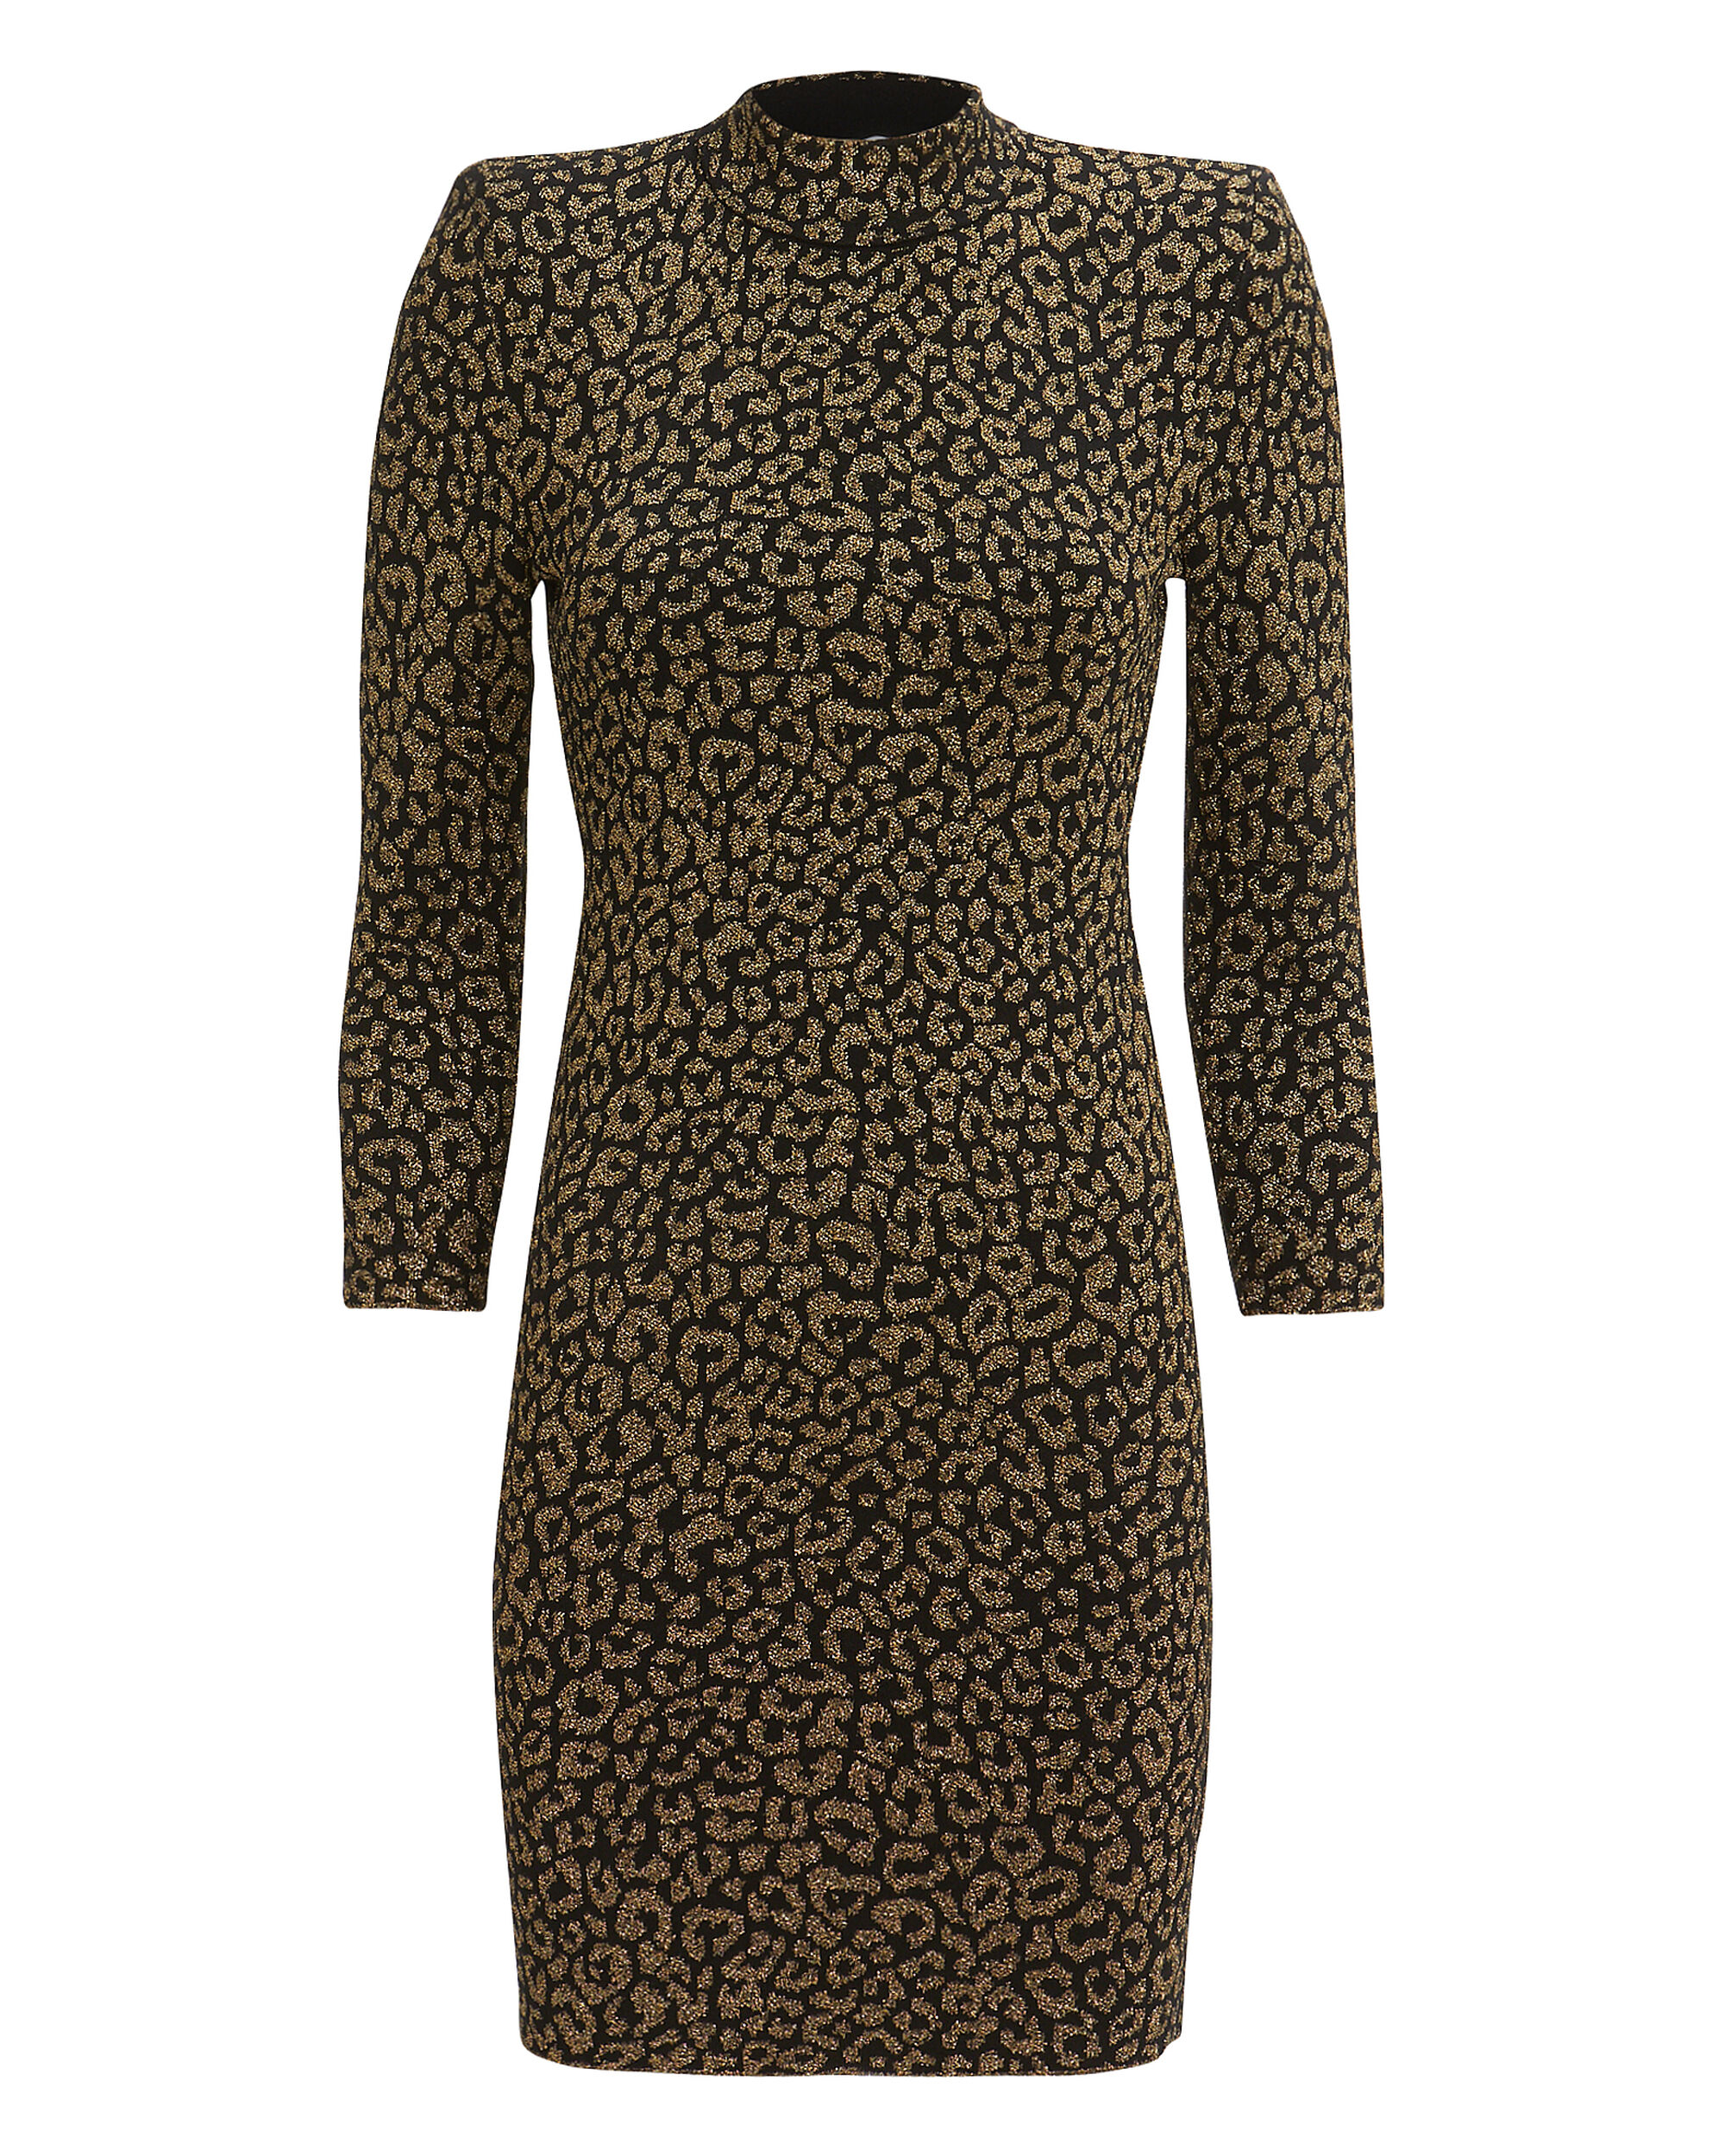 Mahry Leopard Mini Dress, BLACK, hi-res